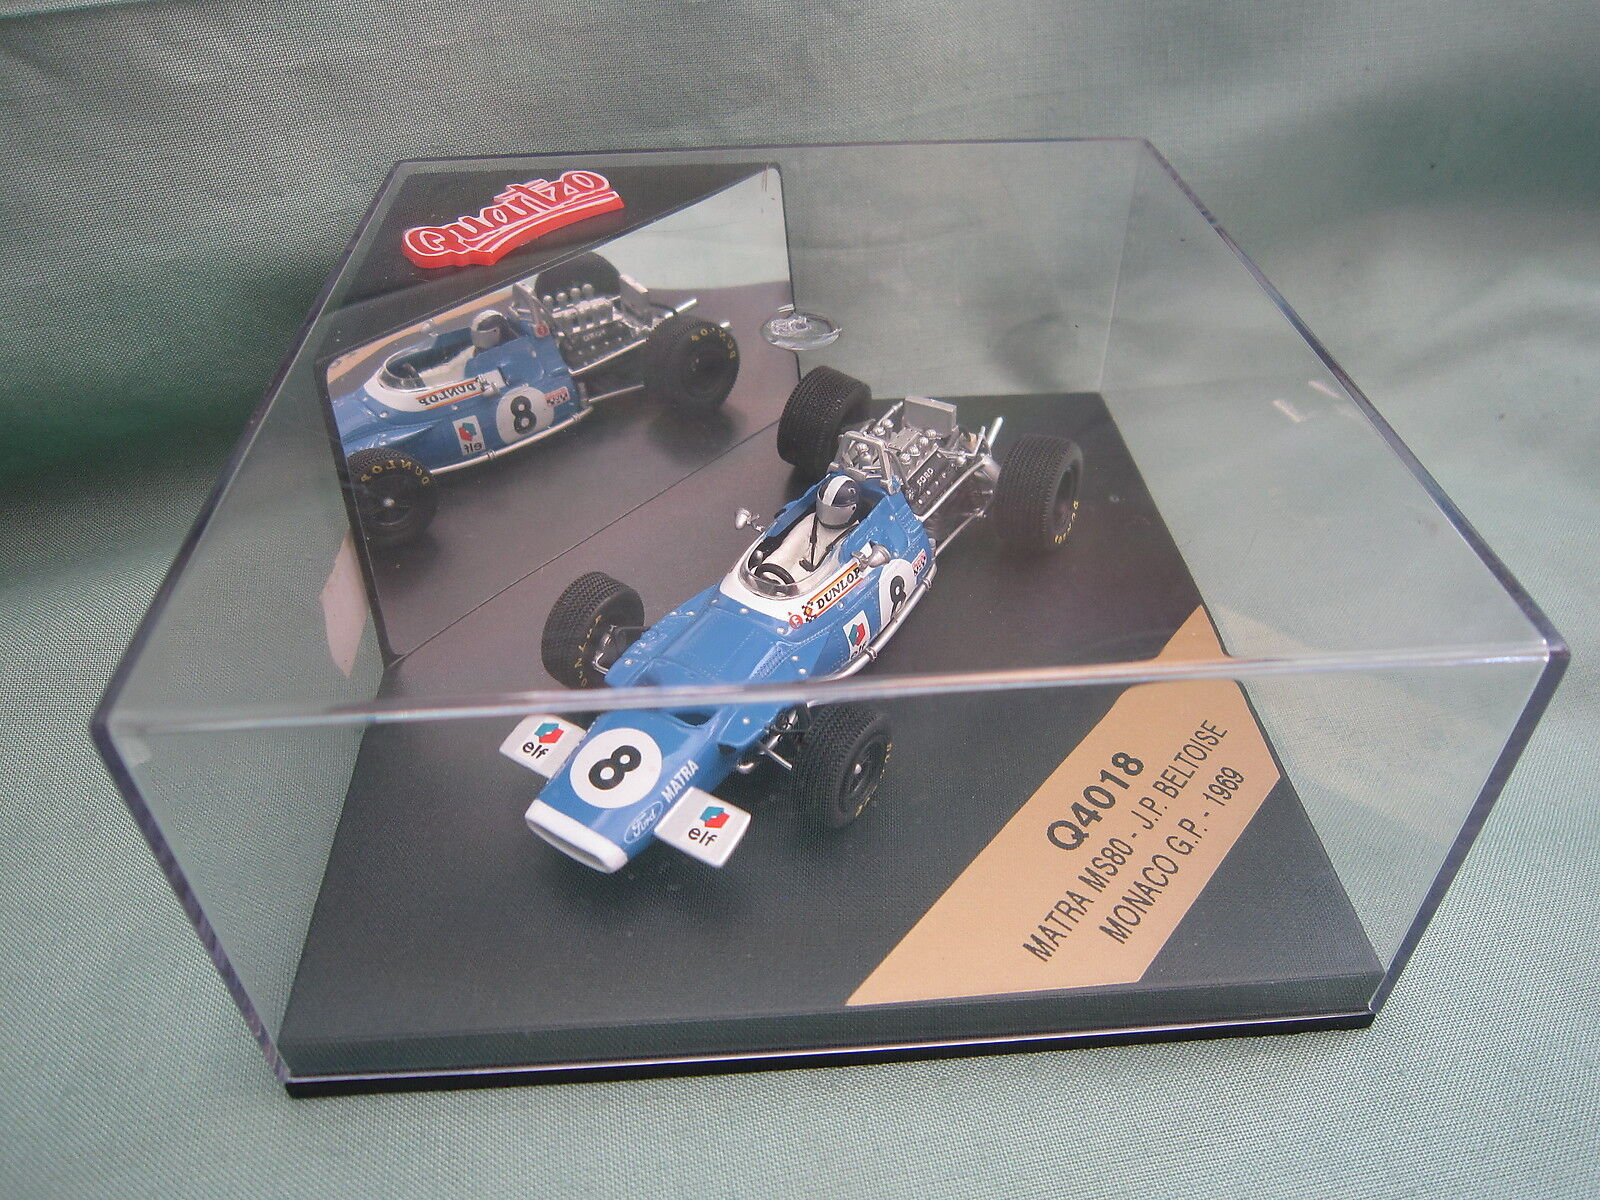 Dv6069 quartzo matra speed ms80 monaco gp 1969 beltoise q4018 1 43 f1